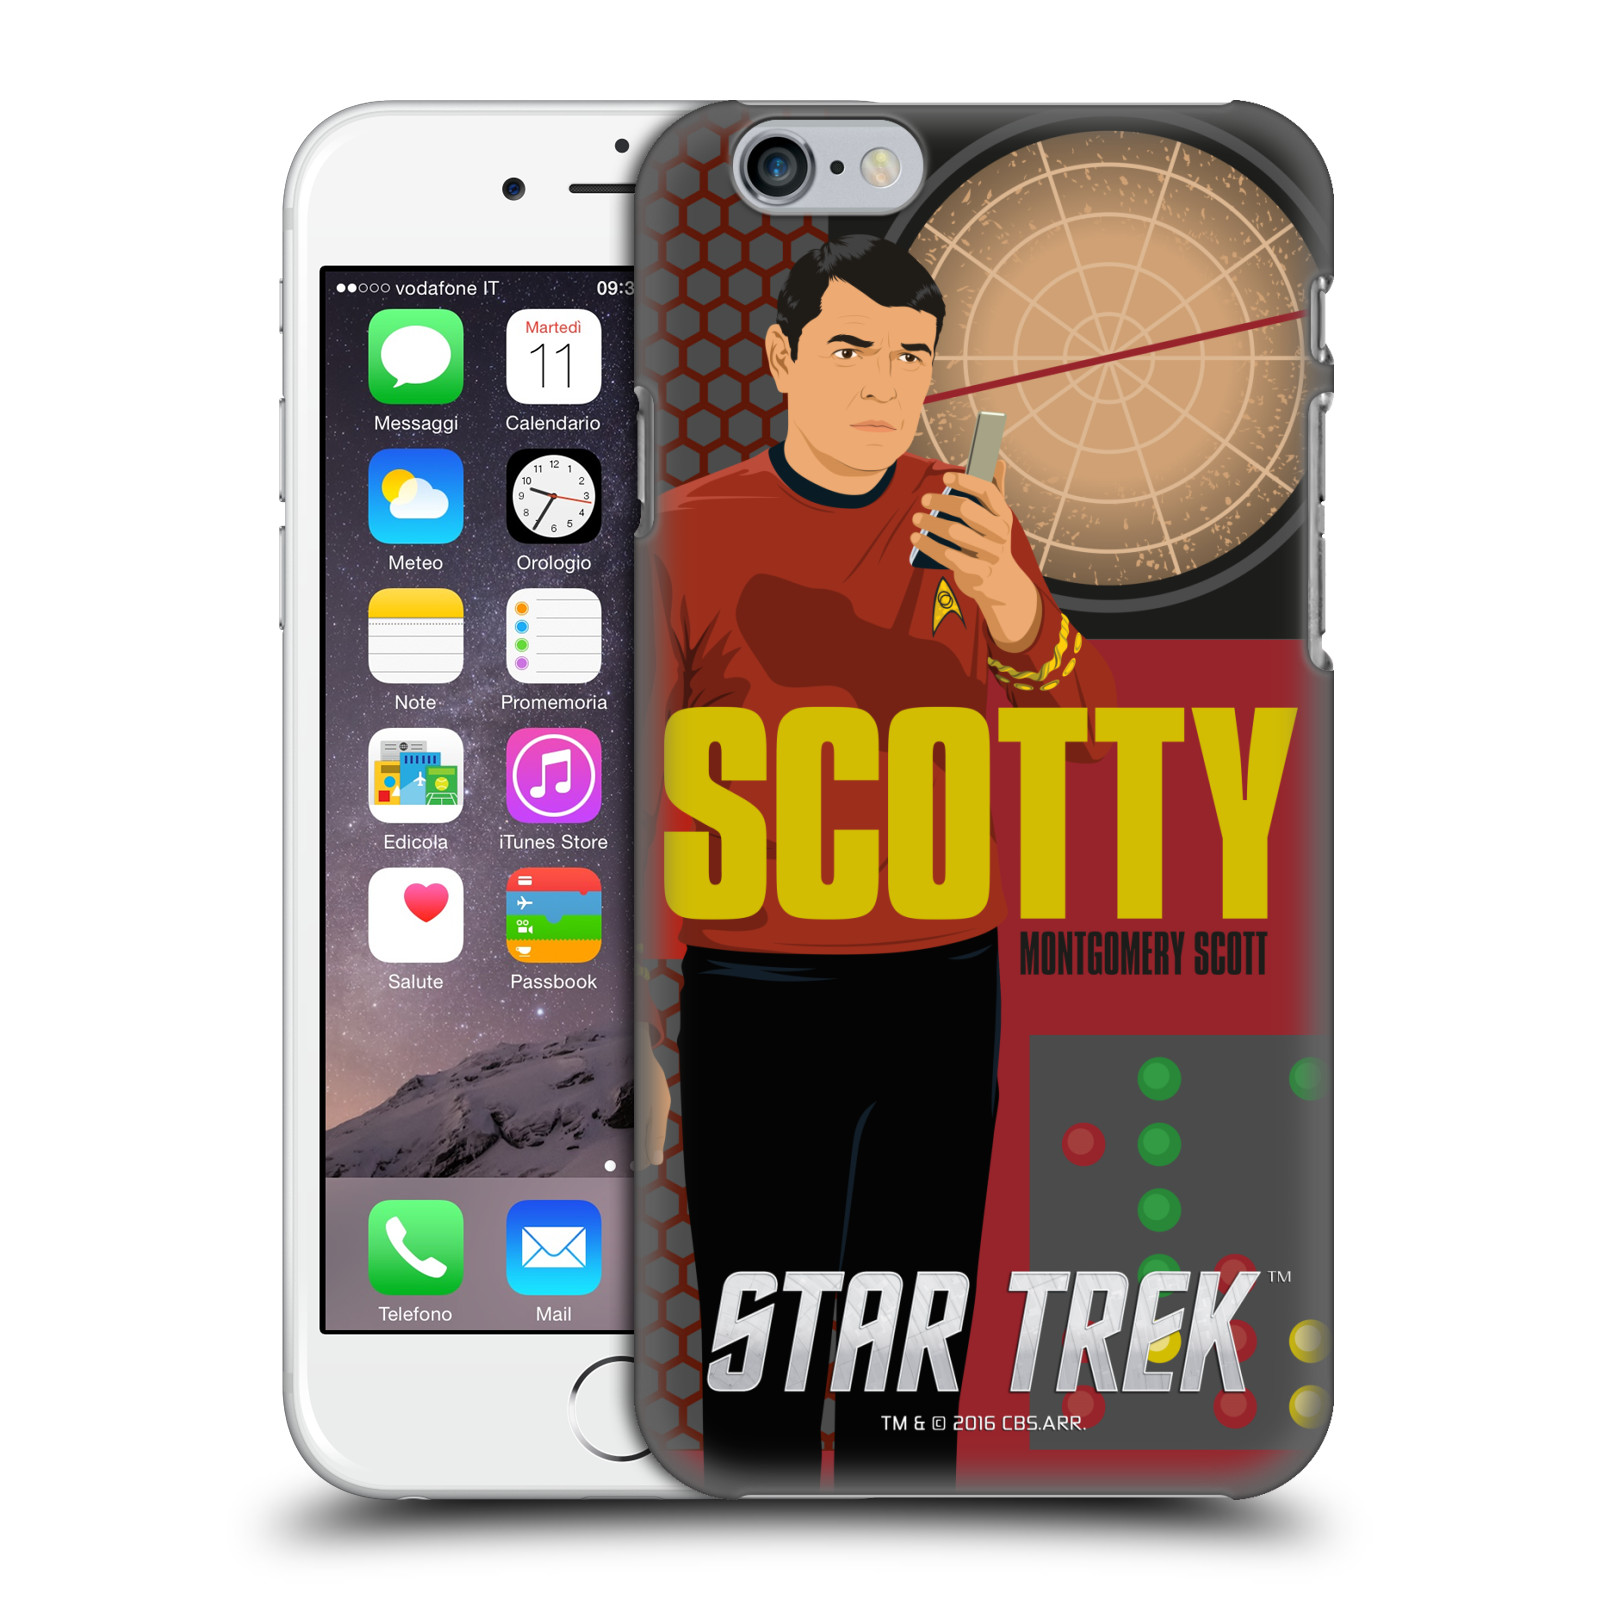 Star Trek Iconic Characters TOS-Scotty